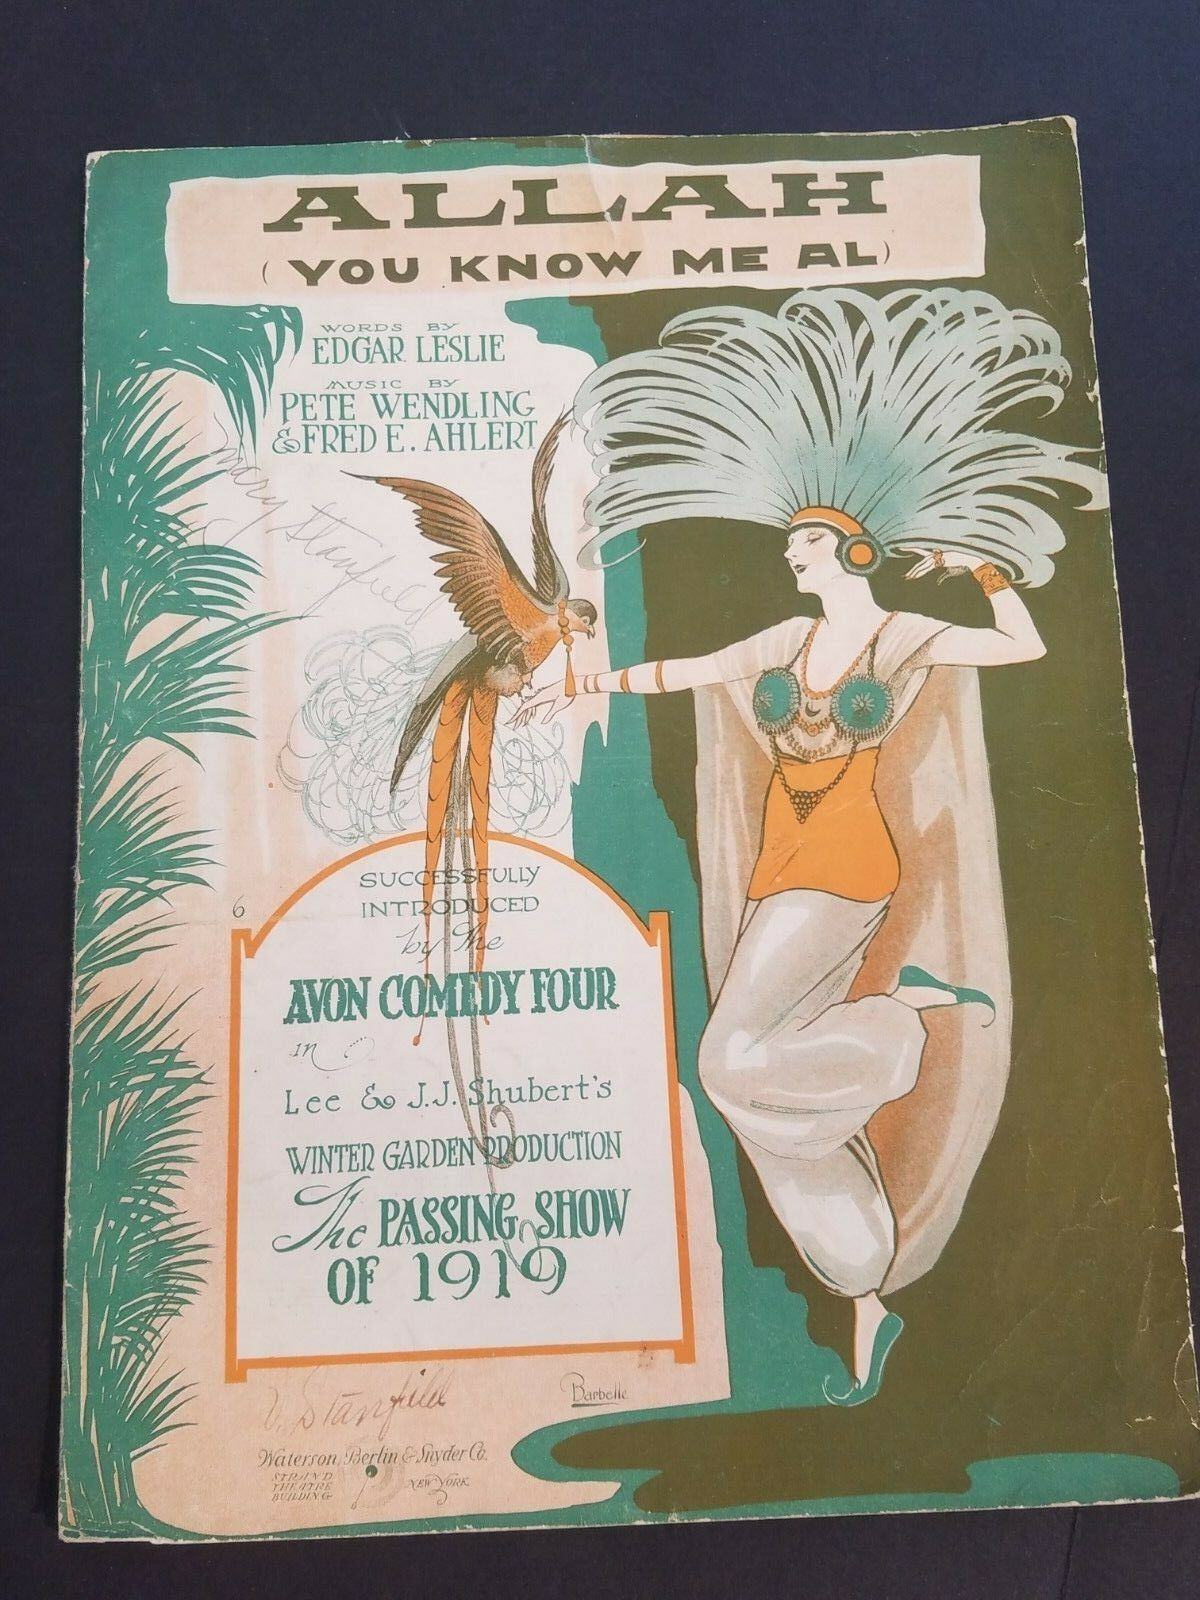 ANTIQUE VINTAGE Sheet Music 1919 Allah You KnoW Me Well Al By Edgar Leslie